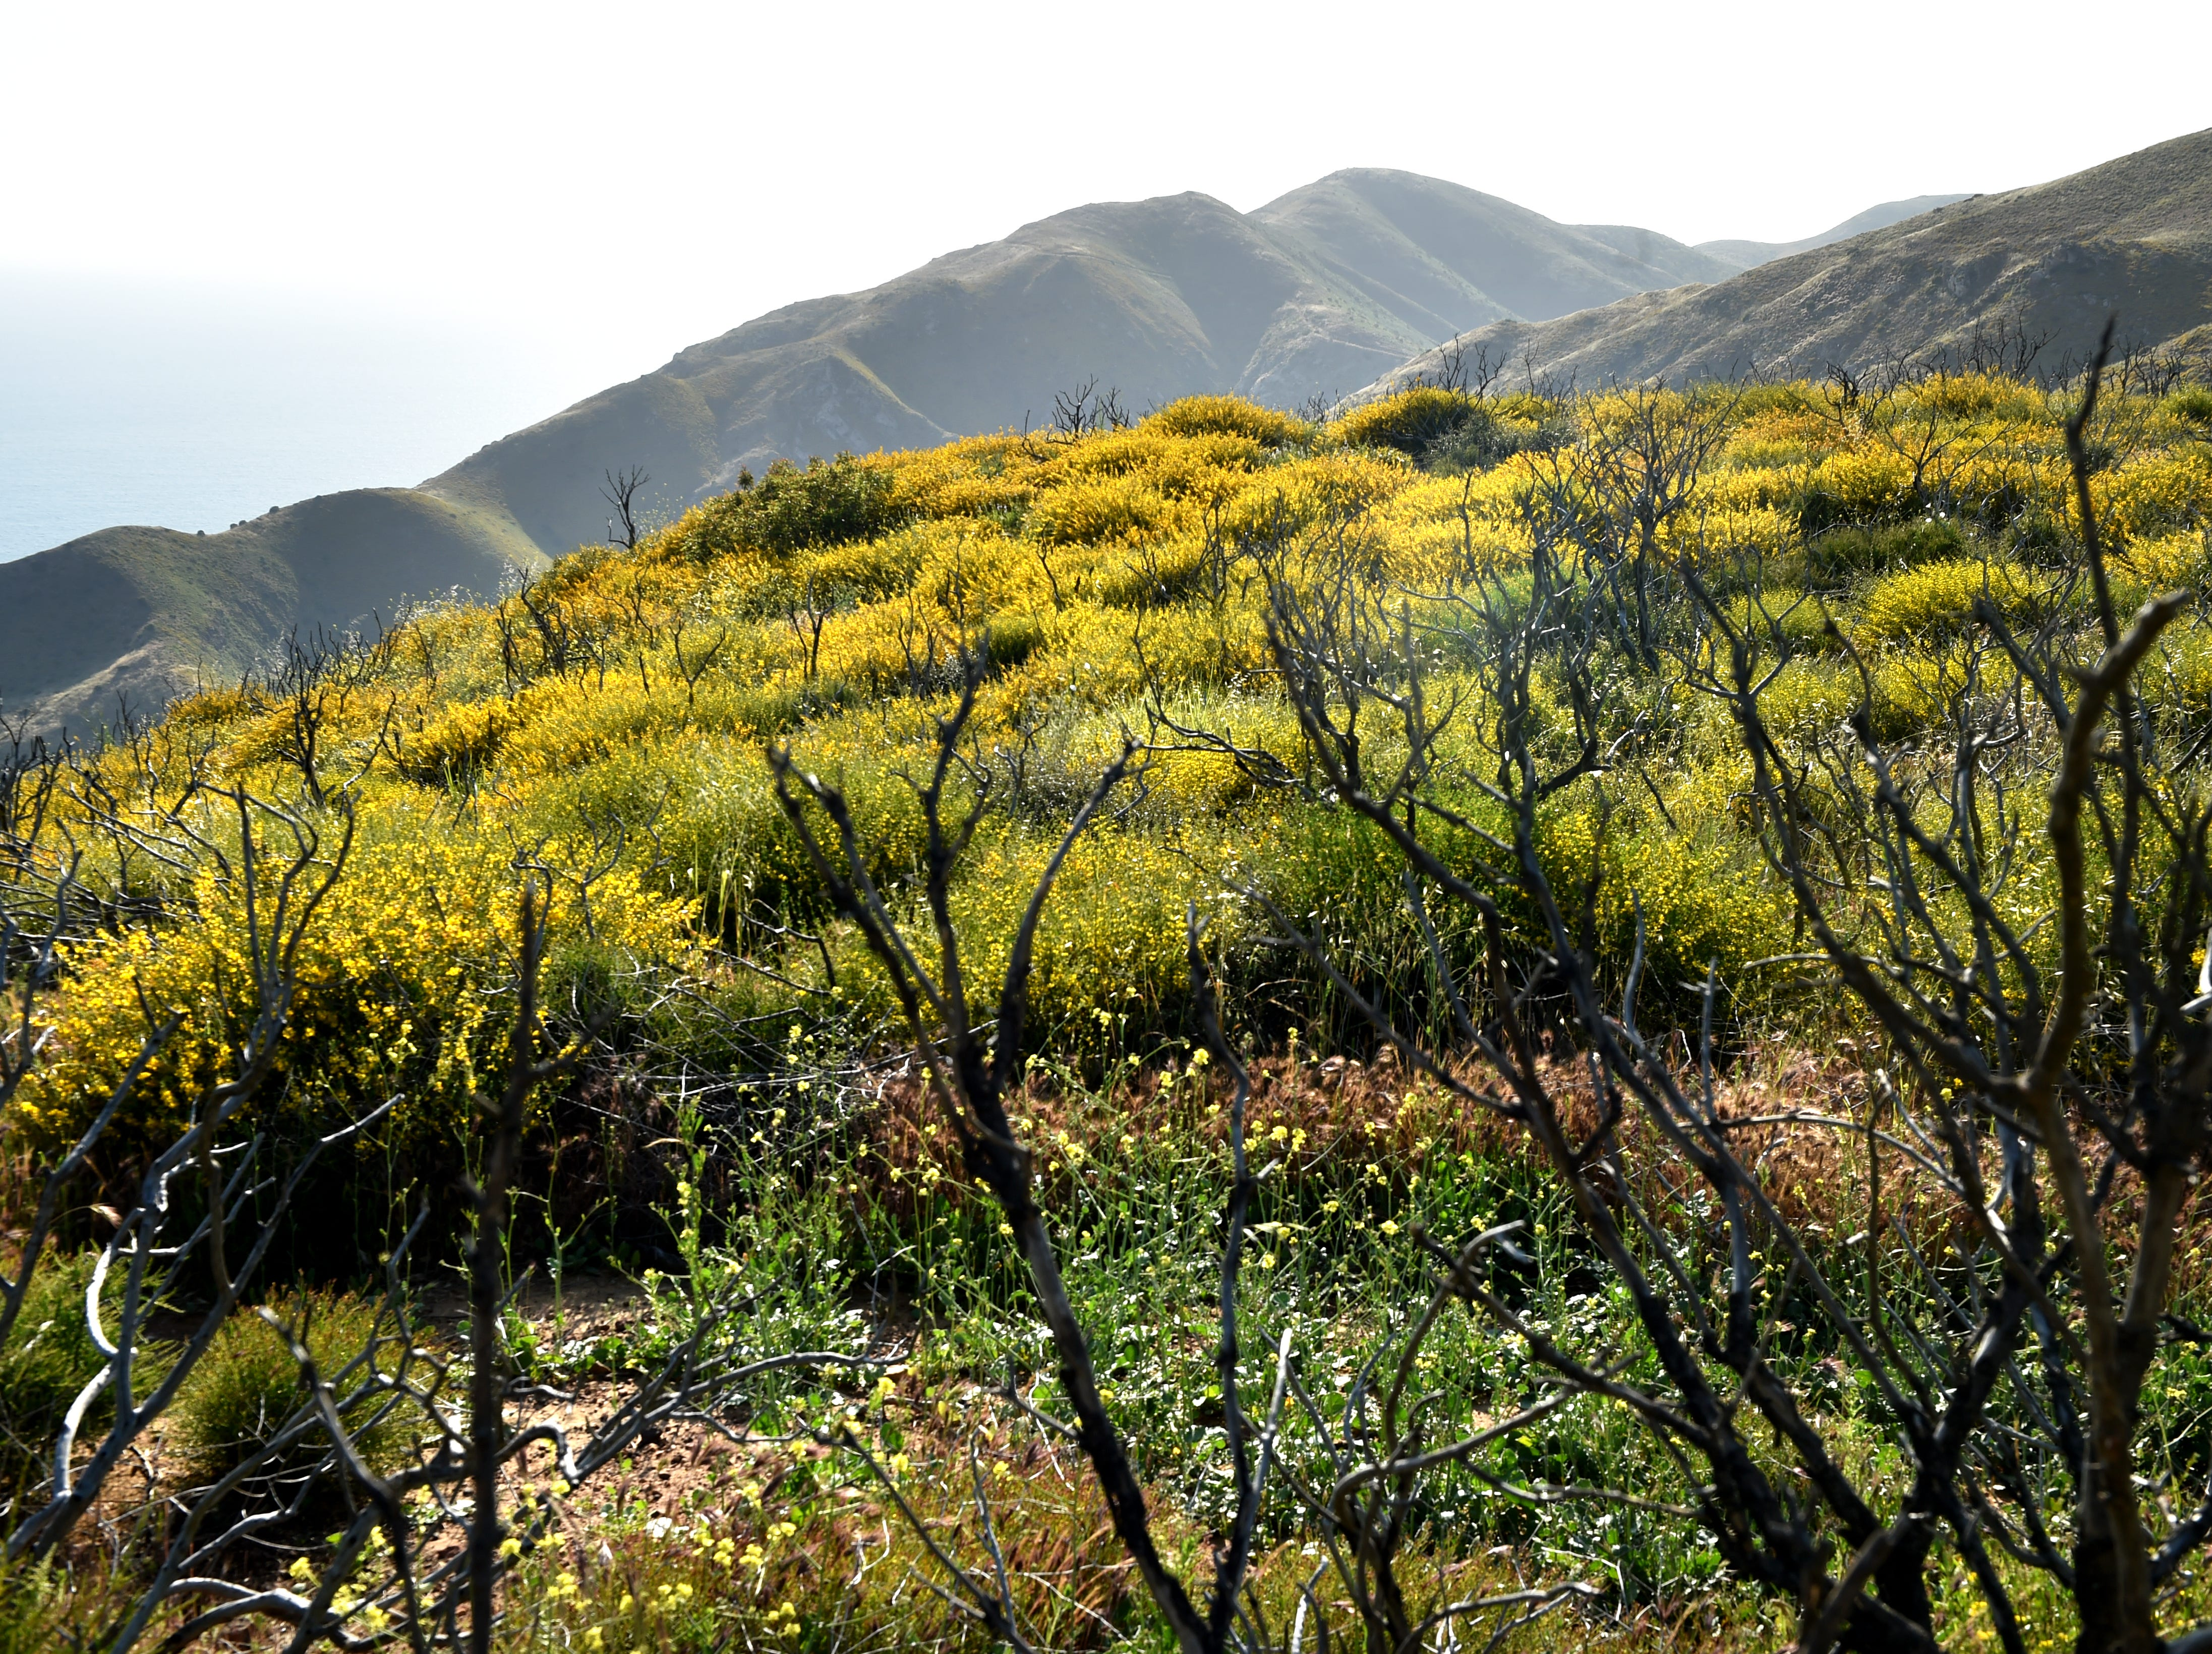 After this year's wet winter, native grasses, black mustard and wildflowers cover a previously burned area of the Santa Monica Mountains. The vegetation bloom could pose challenges for firefighting agencies as summer approaches, leaving an abundance of dry fuel for wildfires.